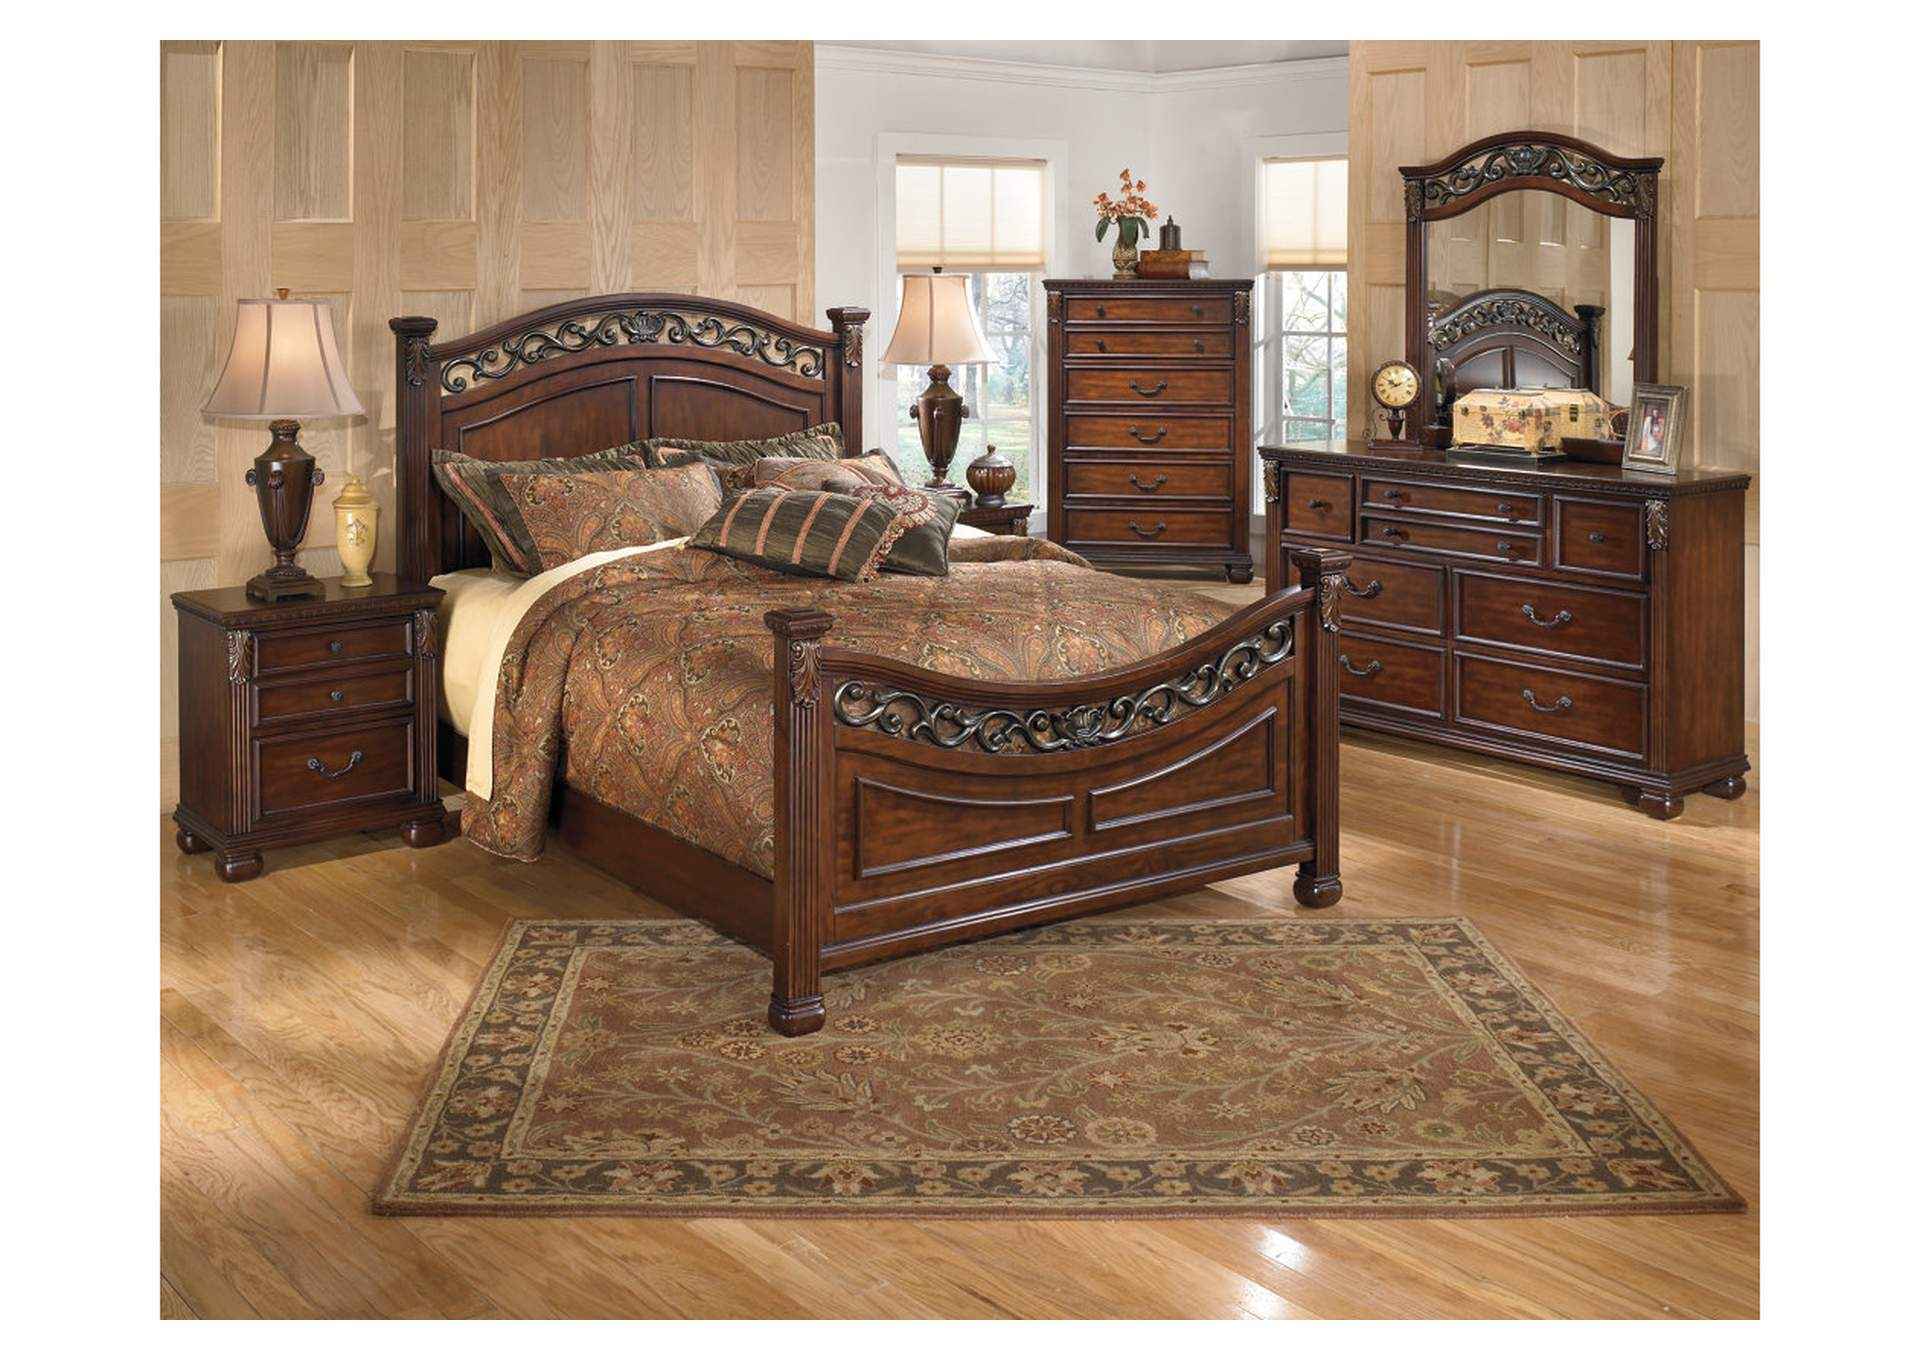 Leahlyn Queen Panel Bed, Dresser & Mirror,Signature Design By Ashley